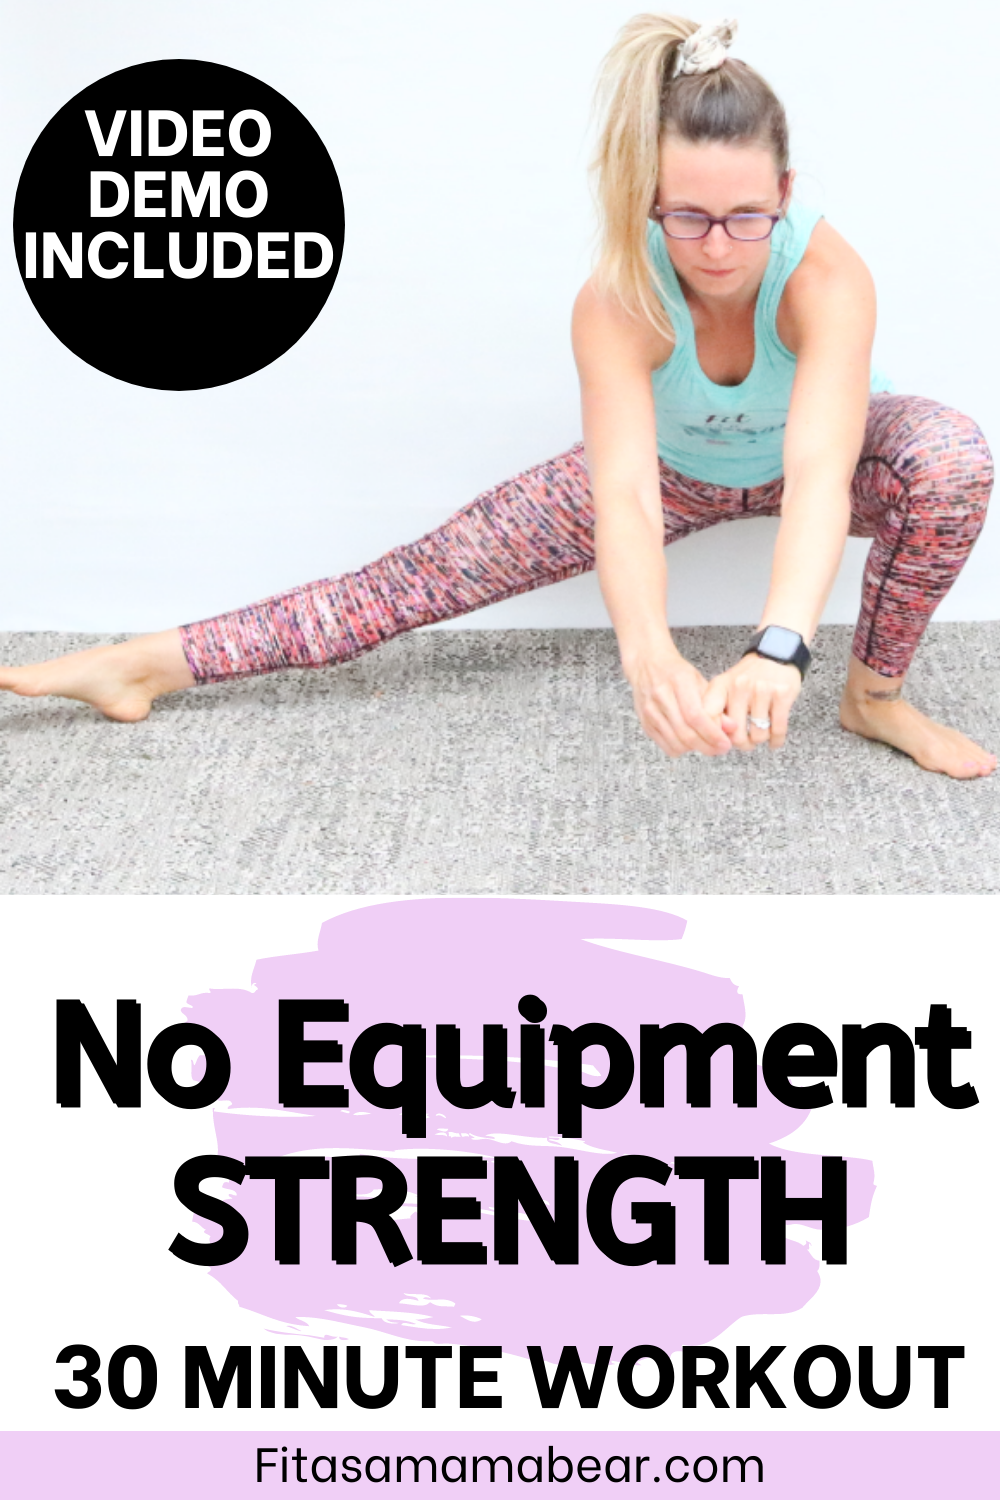 Featured image: woman in bright workout clothes performing a side lunge with text about a no equipment workout